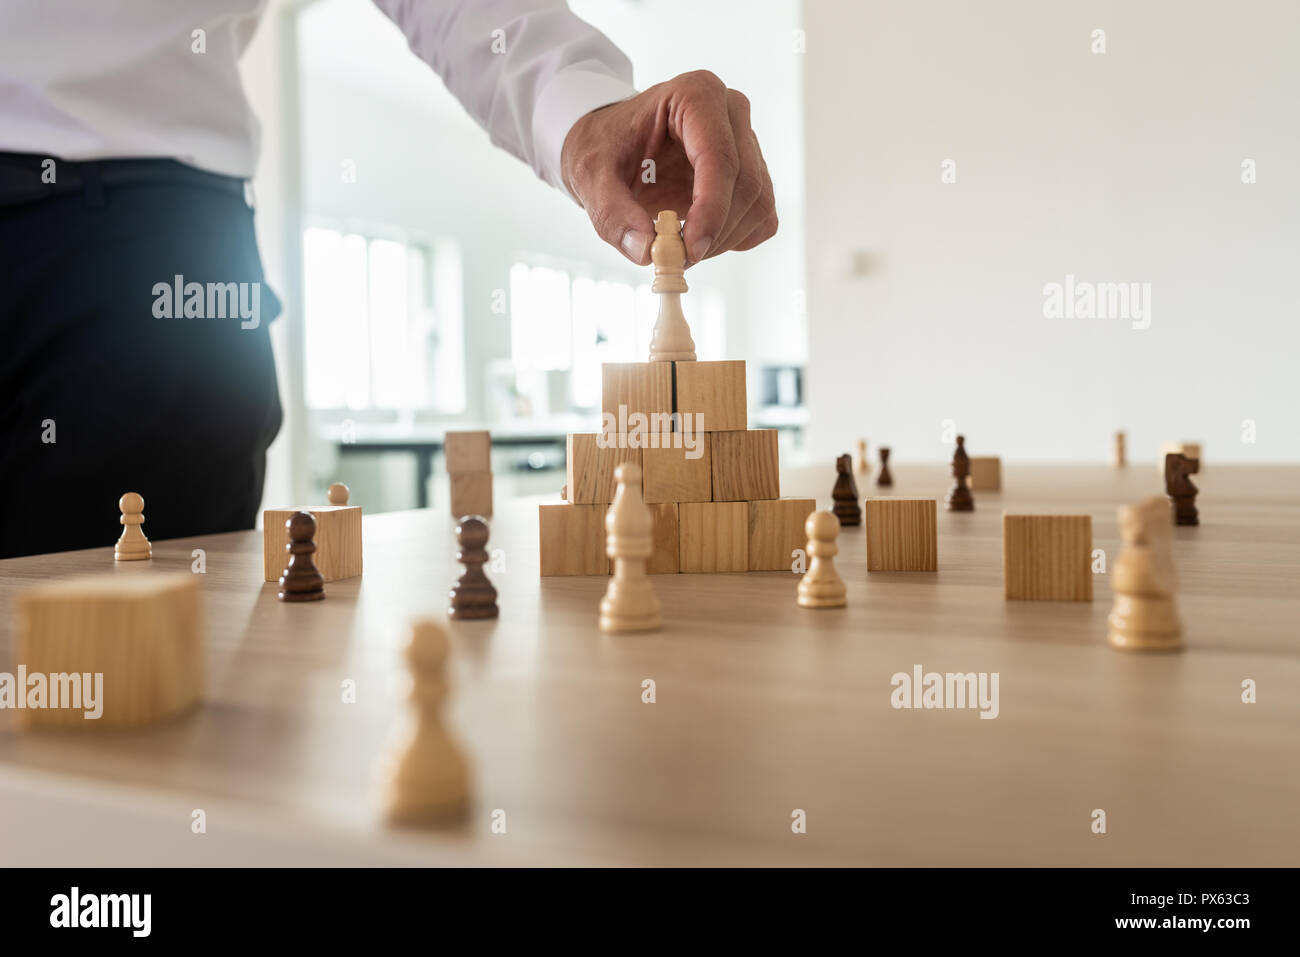 Business hierarchy concept with businessman placing chess figure of king on top of wooden stacked wooden blocks and other figures spread on office des - Stock Image